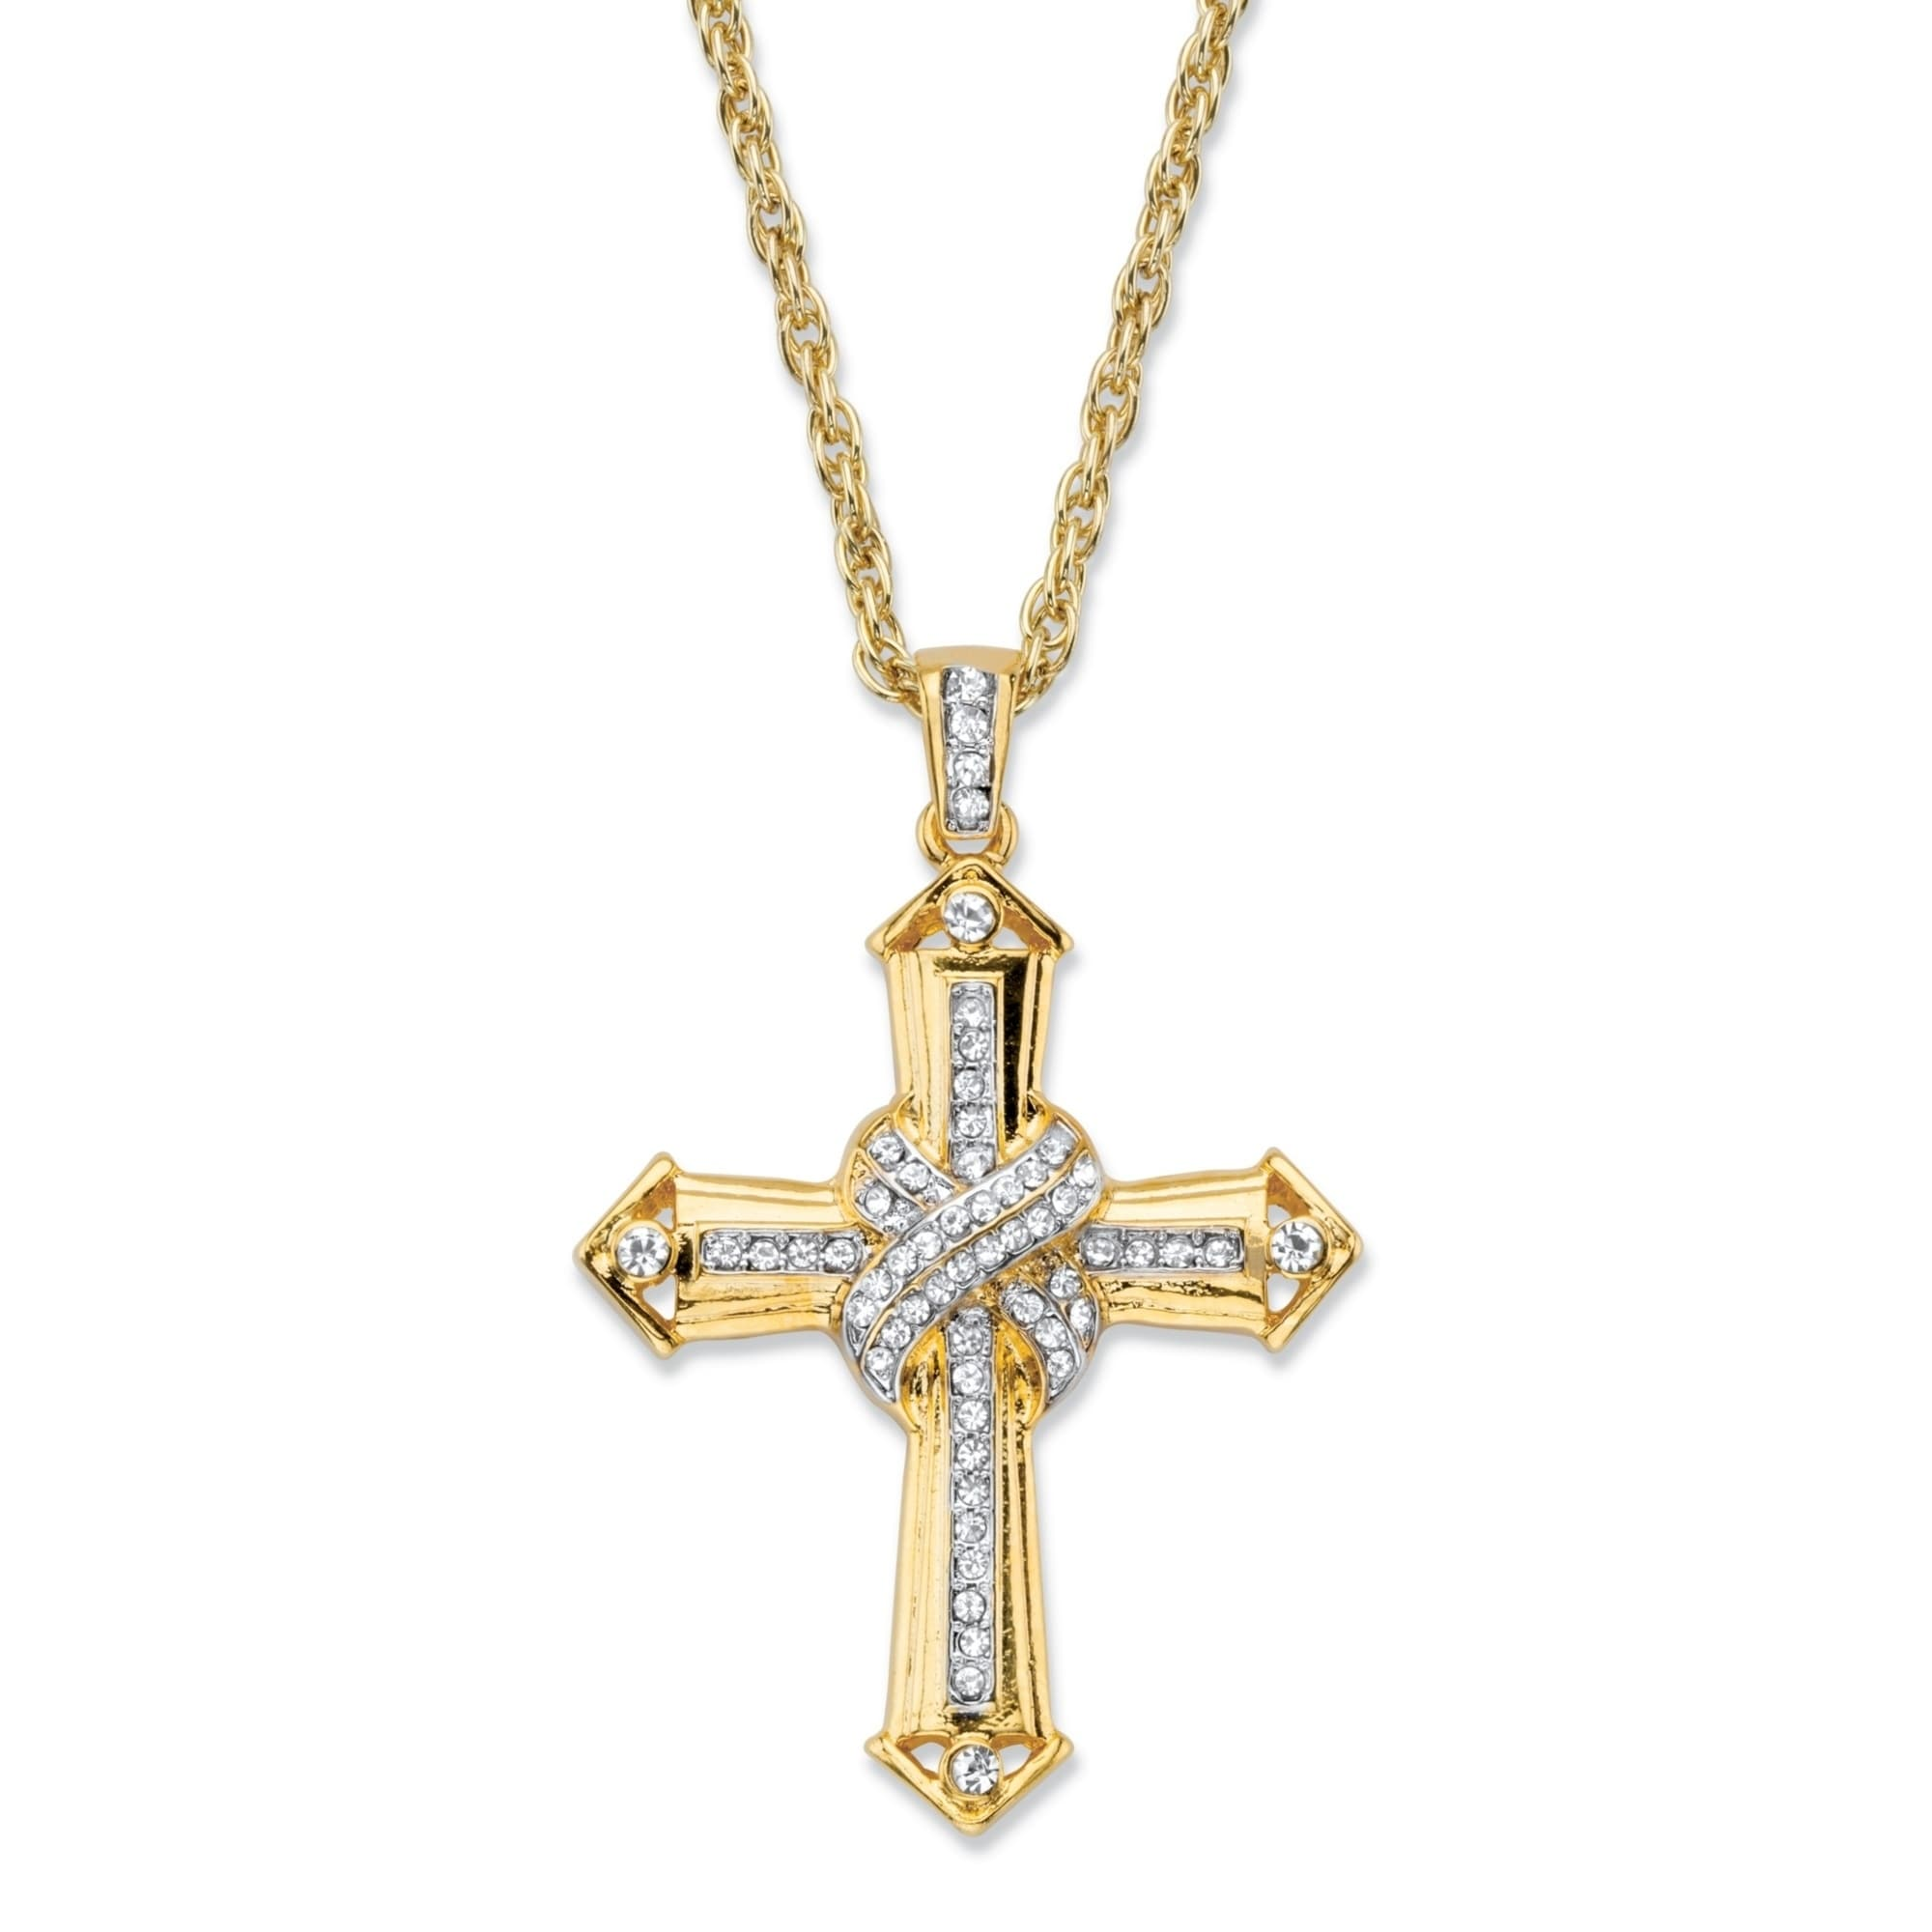 Shop Men S Gold Tone Cross Pendant With 24 Chain 38mm Round Crystal On Sale Overstock 27963633